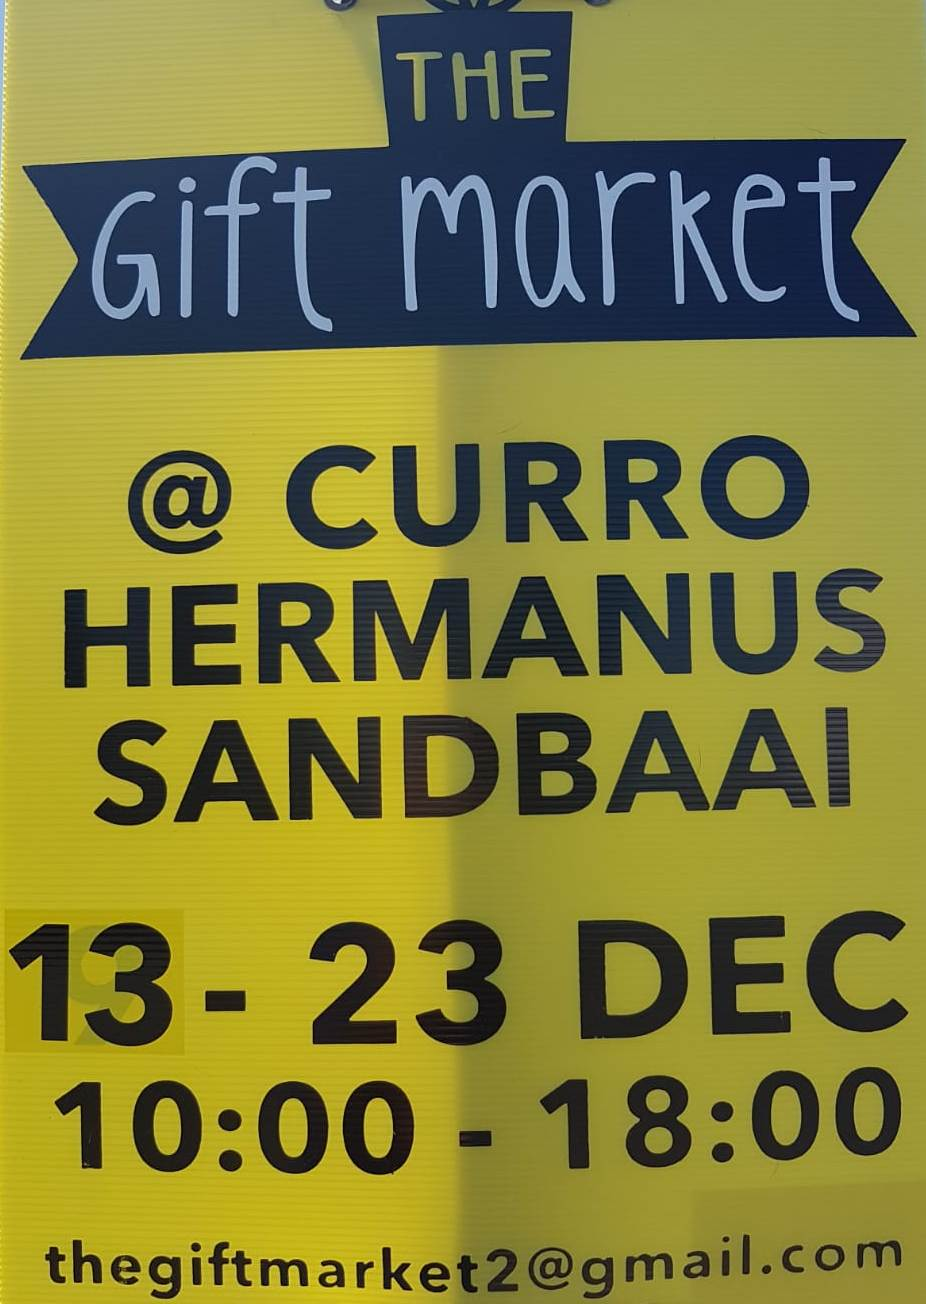 Arts and craft gift market at Curro school, Hermanus